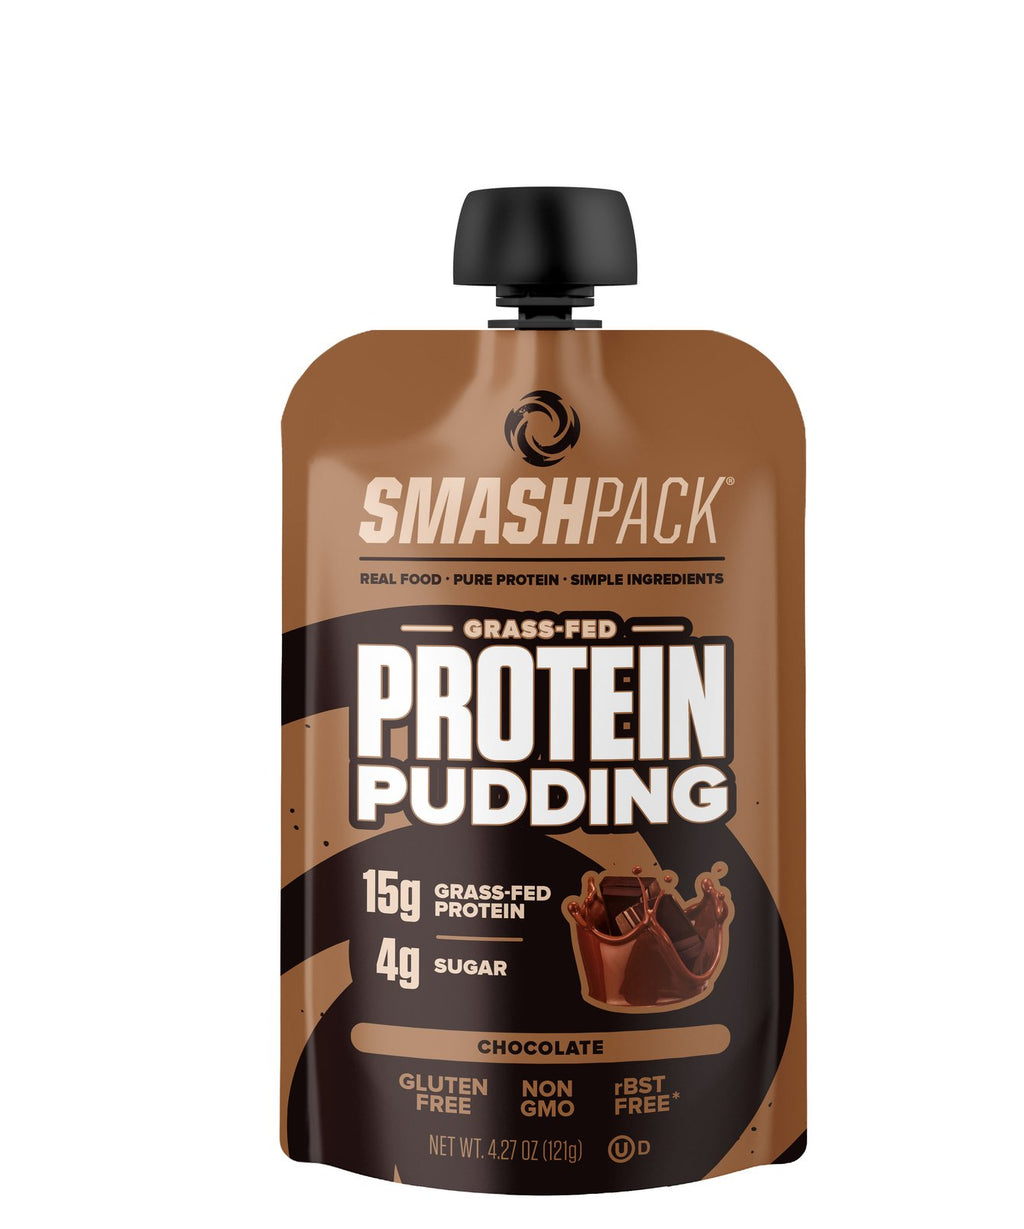 SmashPack Protein Pudding: Coming Soon!